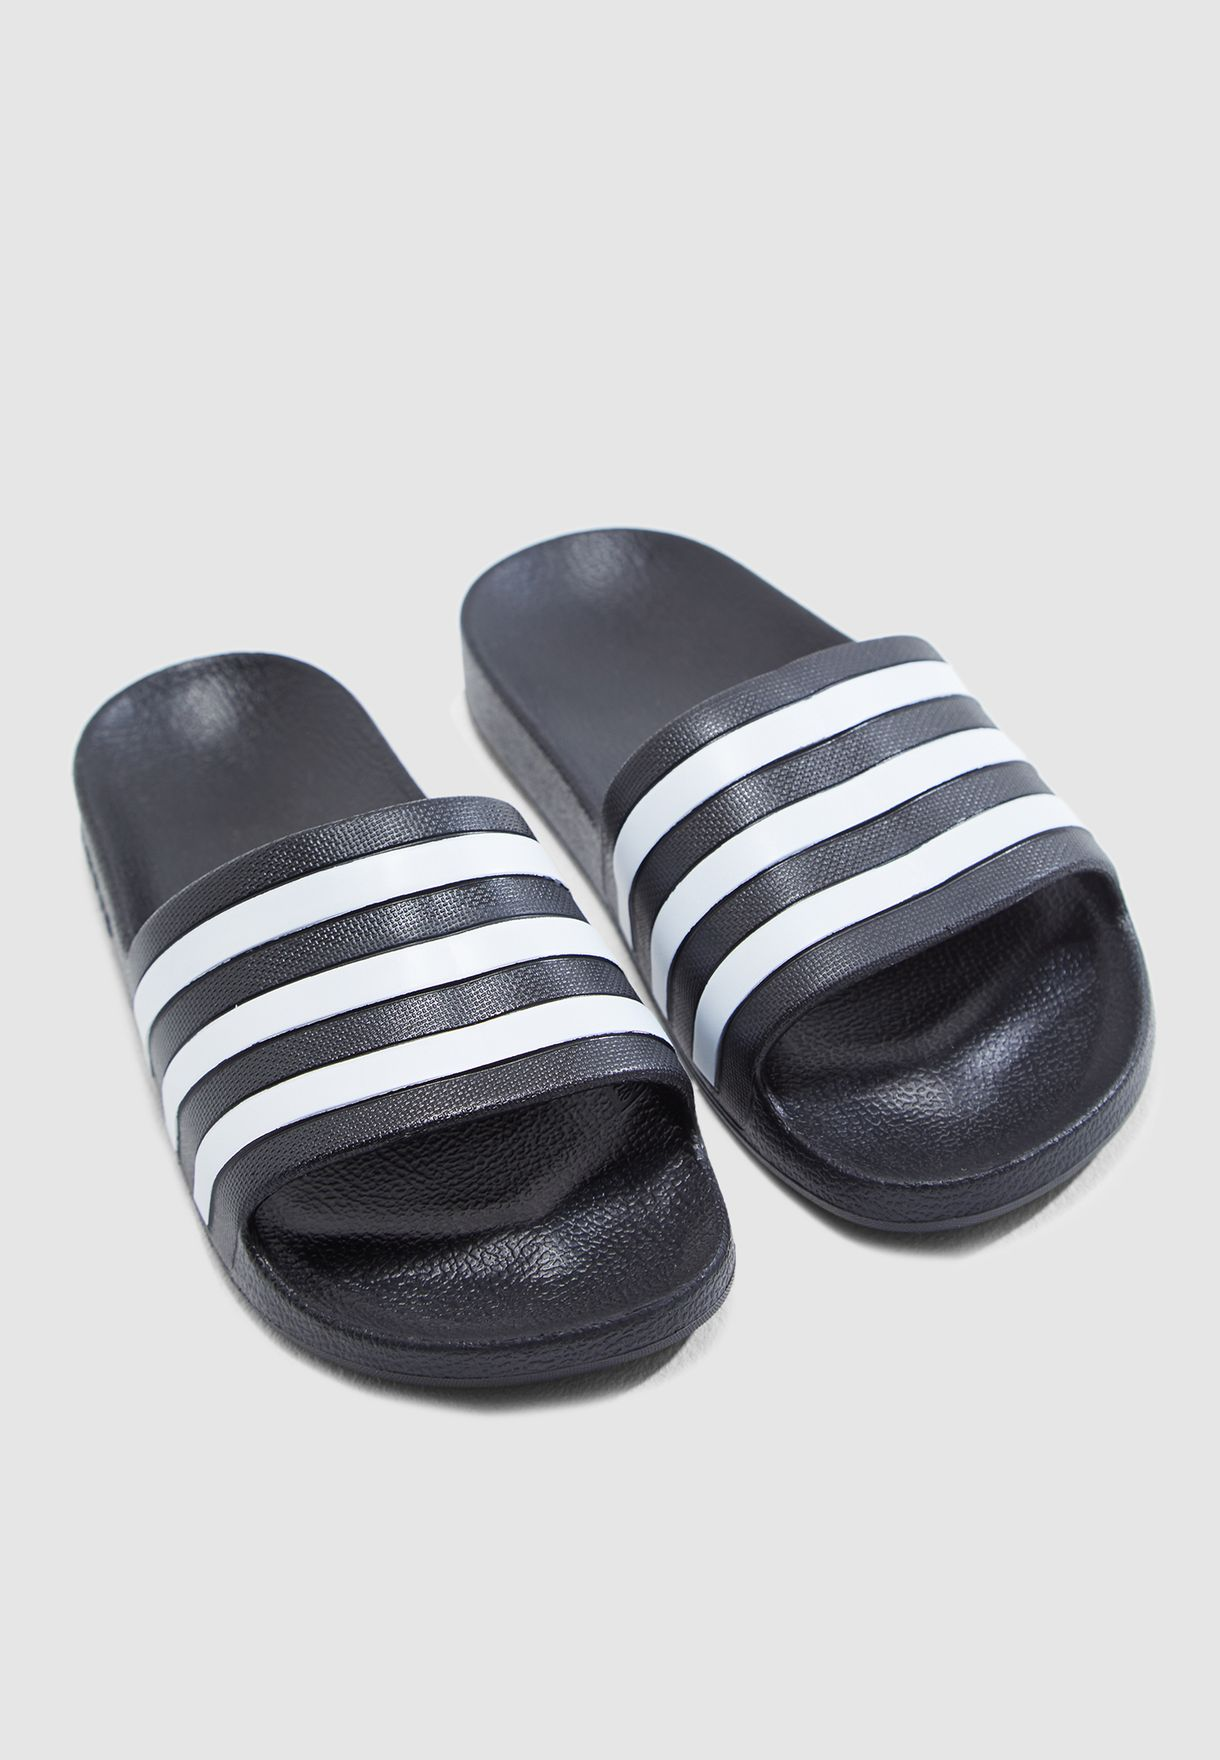 c492f56b6801 Shop adidas black Adilette Aqua Slides F35543 for Women in Saudi ...